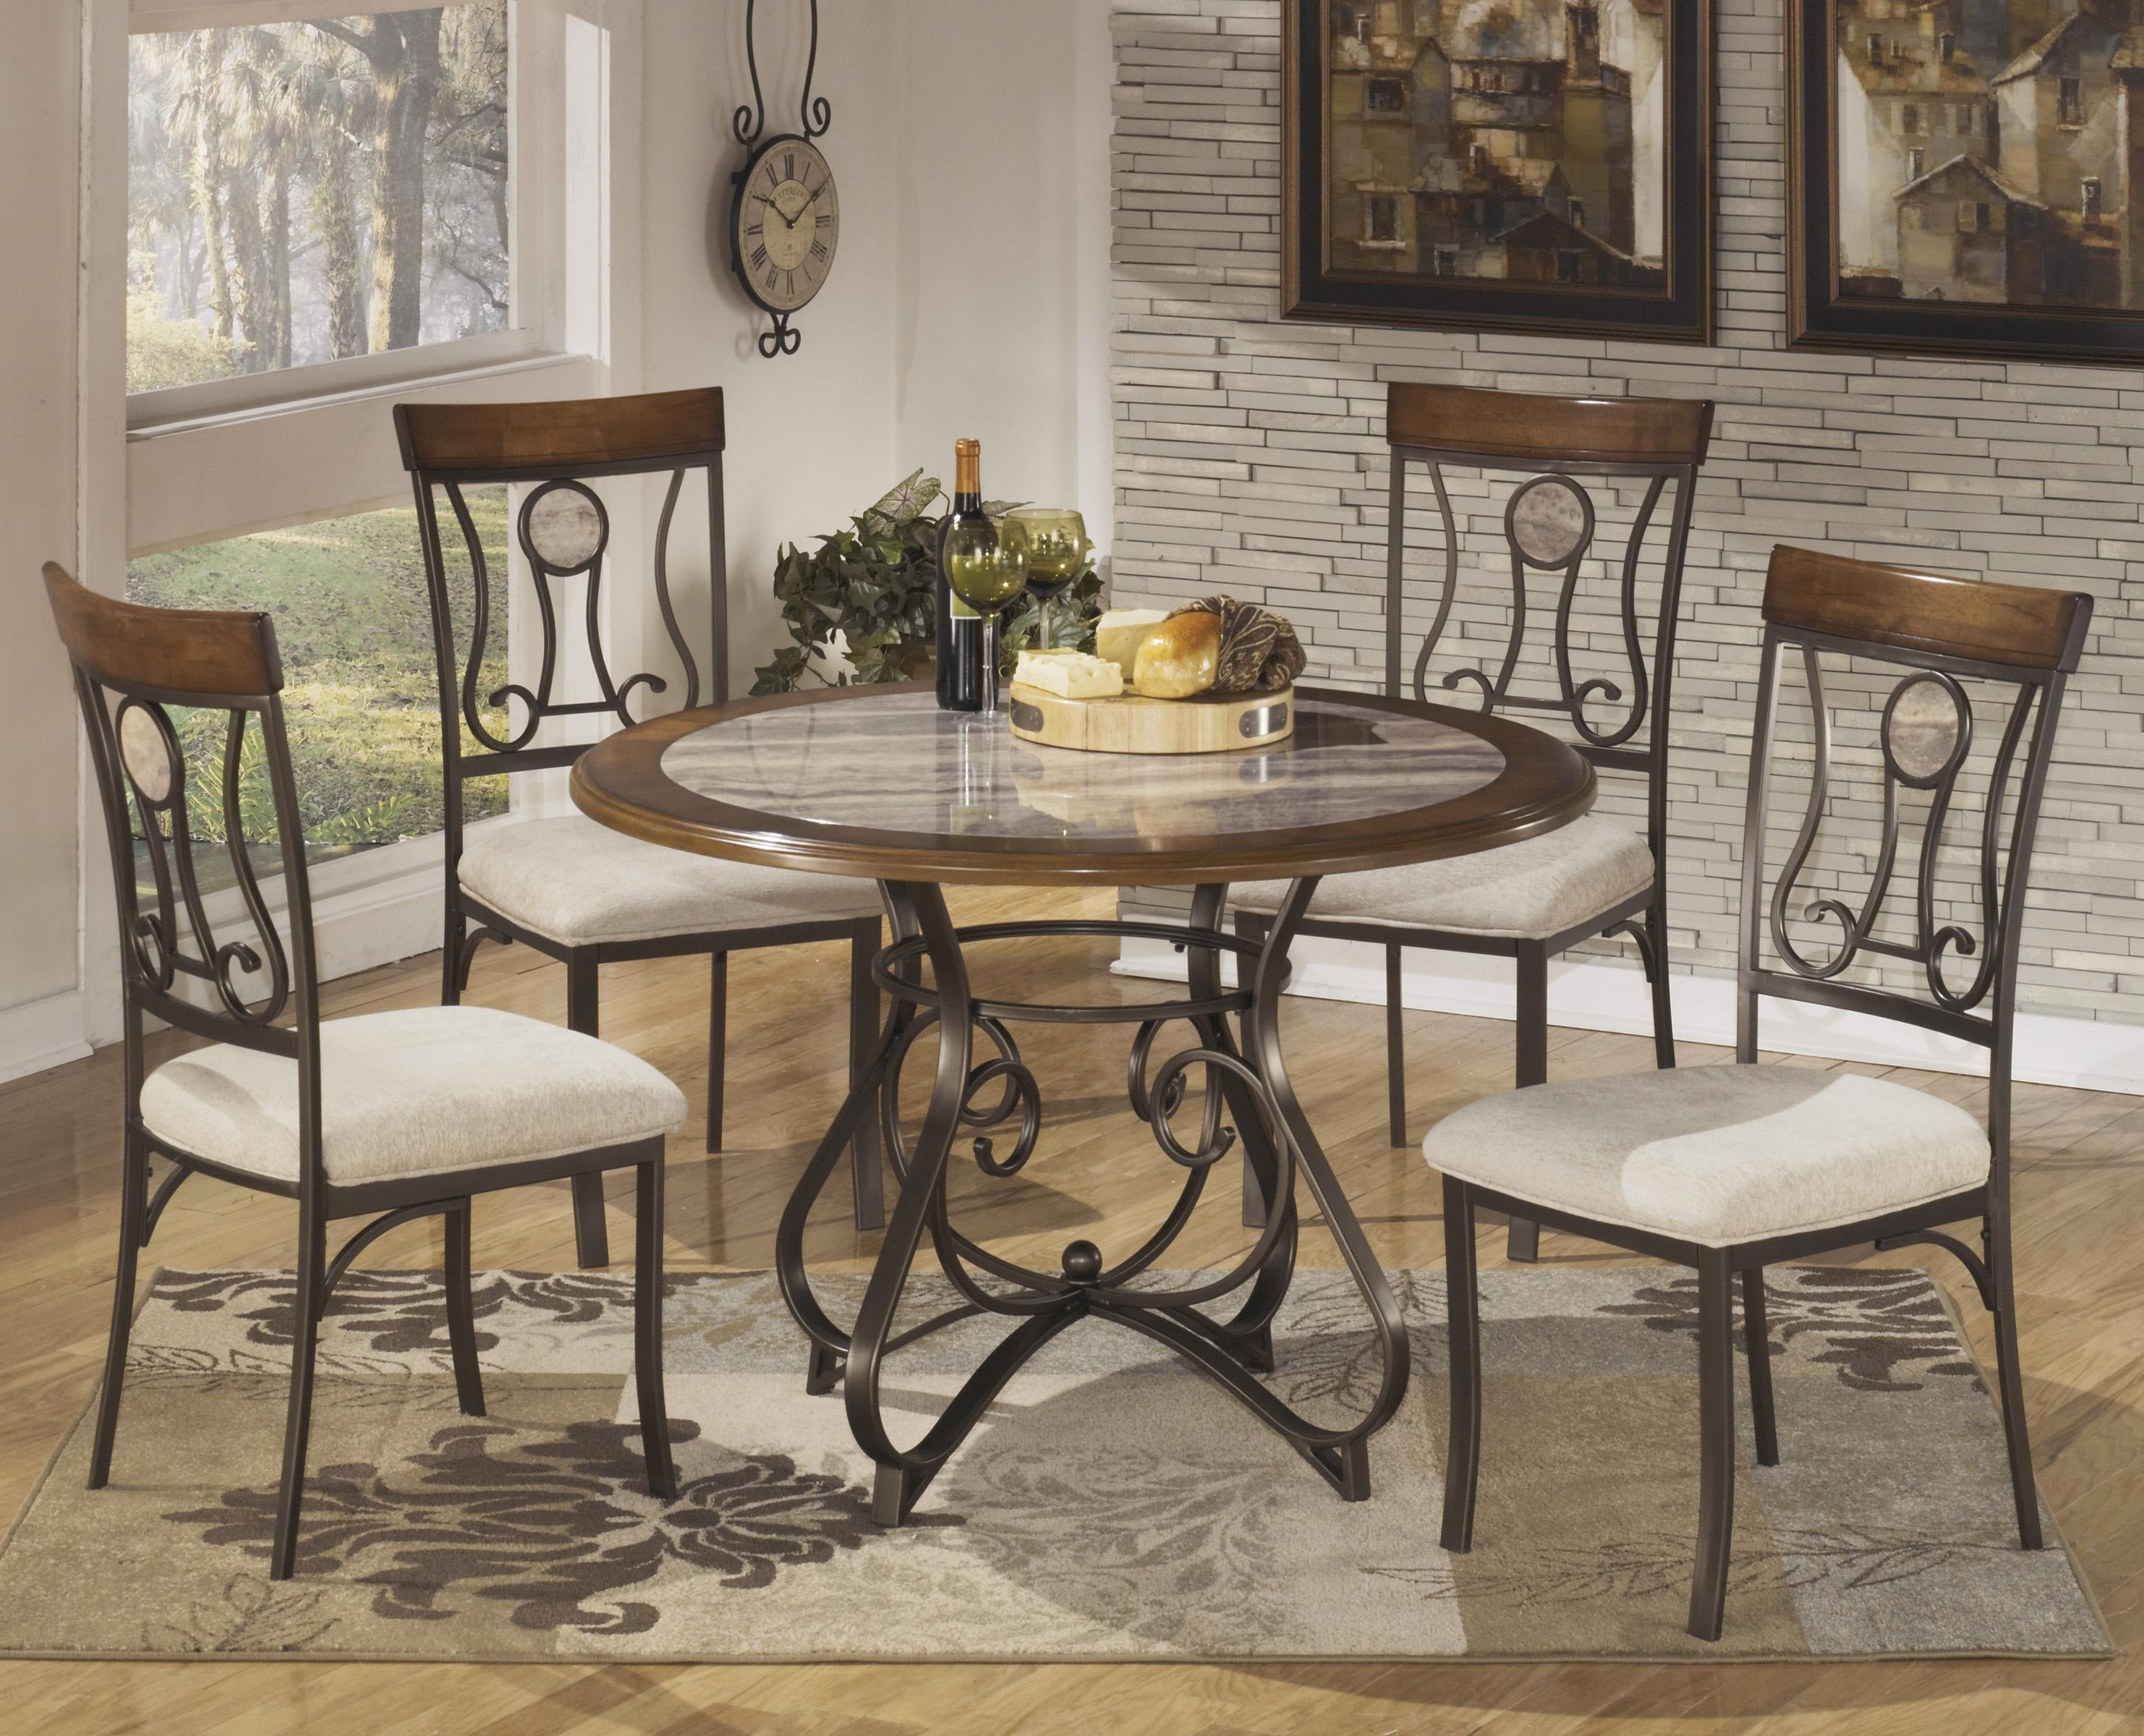 5-Piece Round Dining Table Set & 5-Piece Round Dining Table Set with Steel Frame \u0026 Faux Marble Table ...